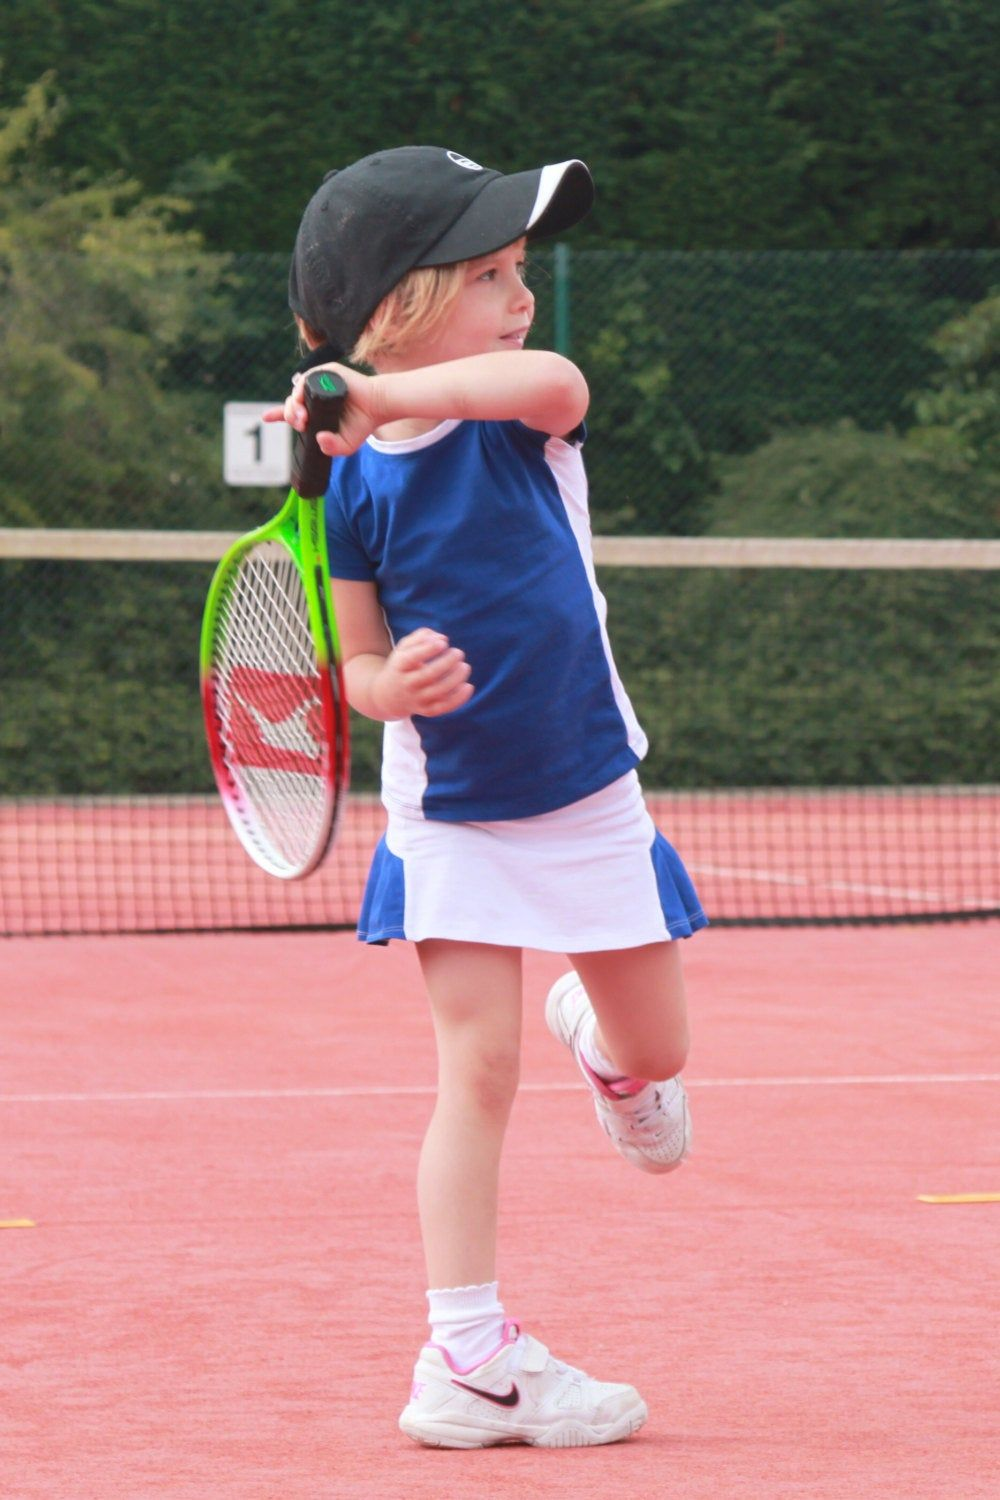 Pin By Mary On Kids Sports Girl Tennis Outfit Tennis Outfit Girl Girls Tennis Skirt